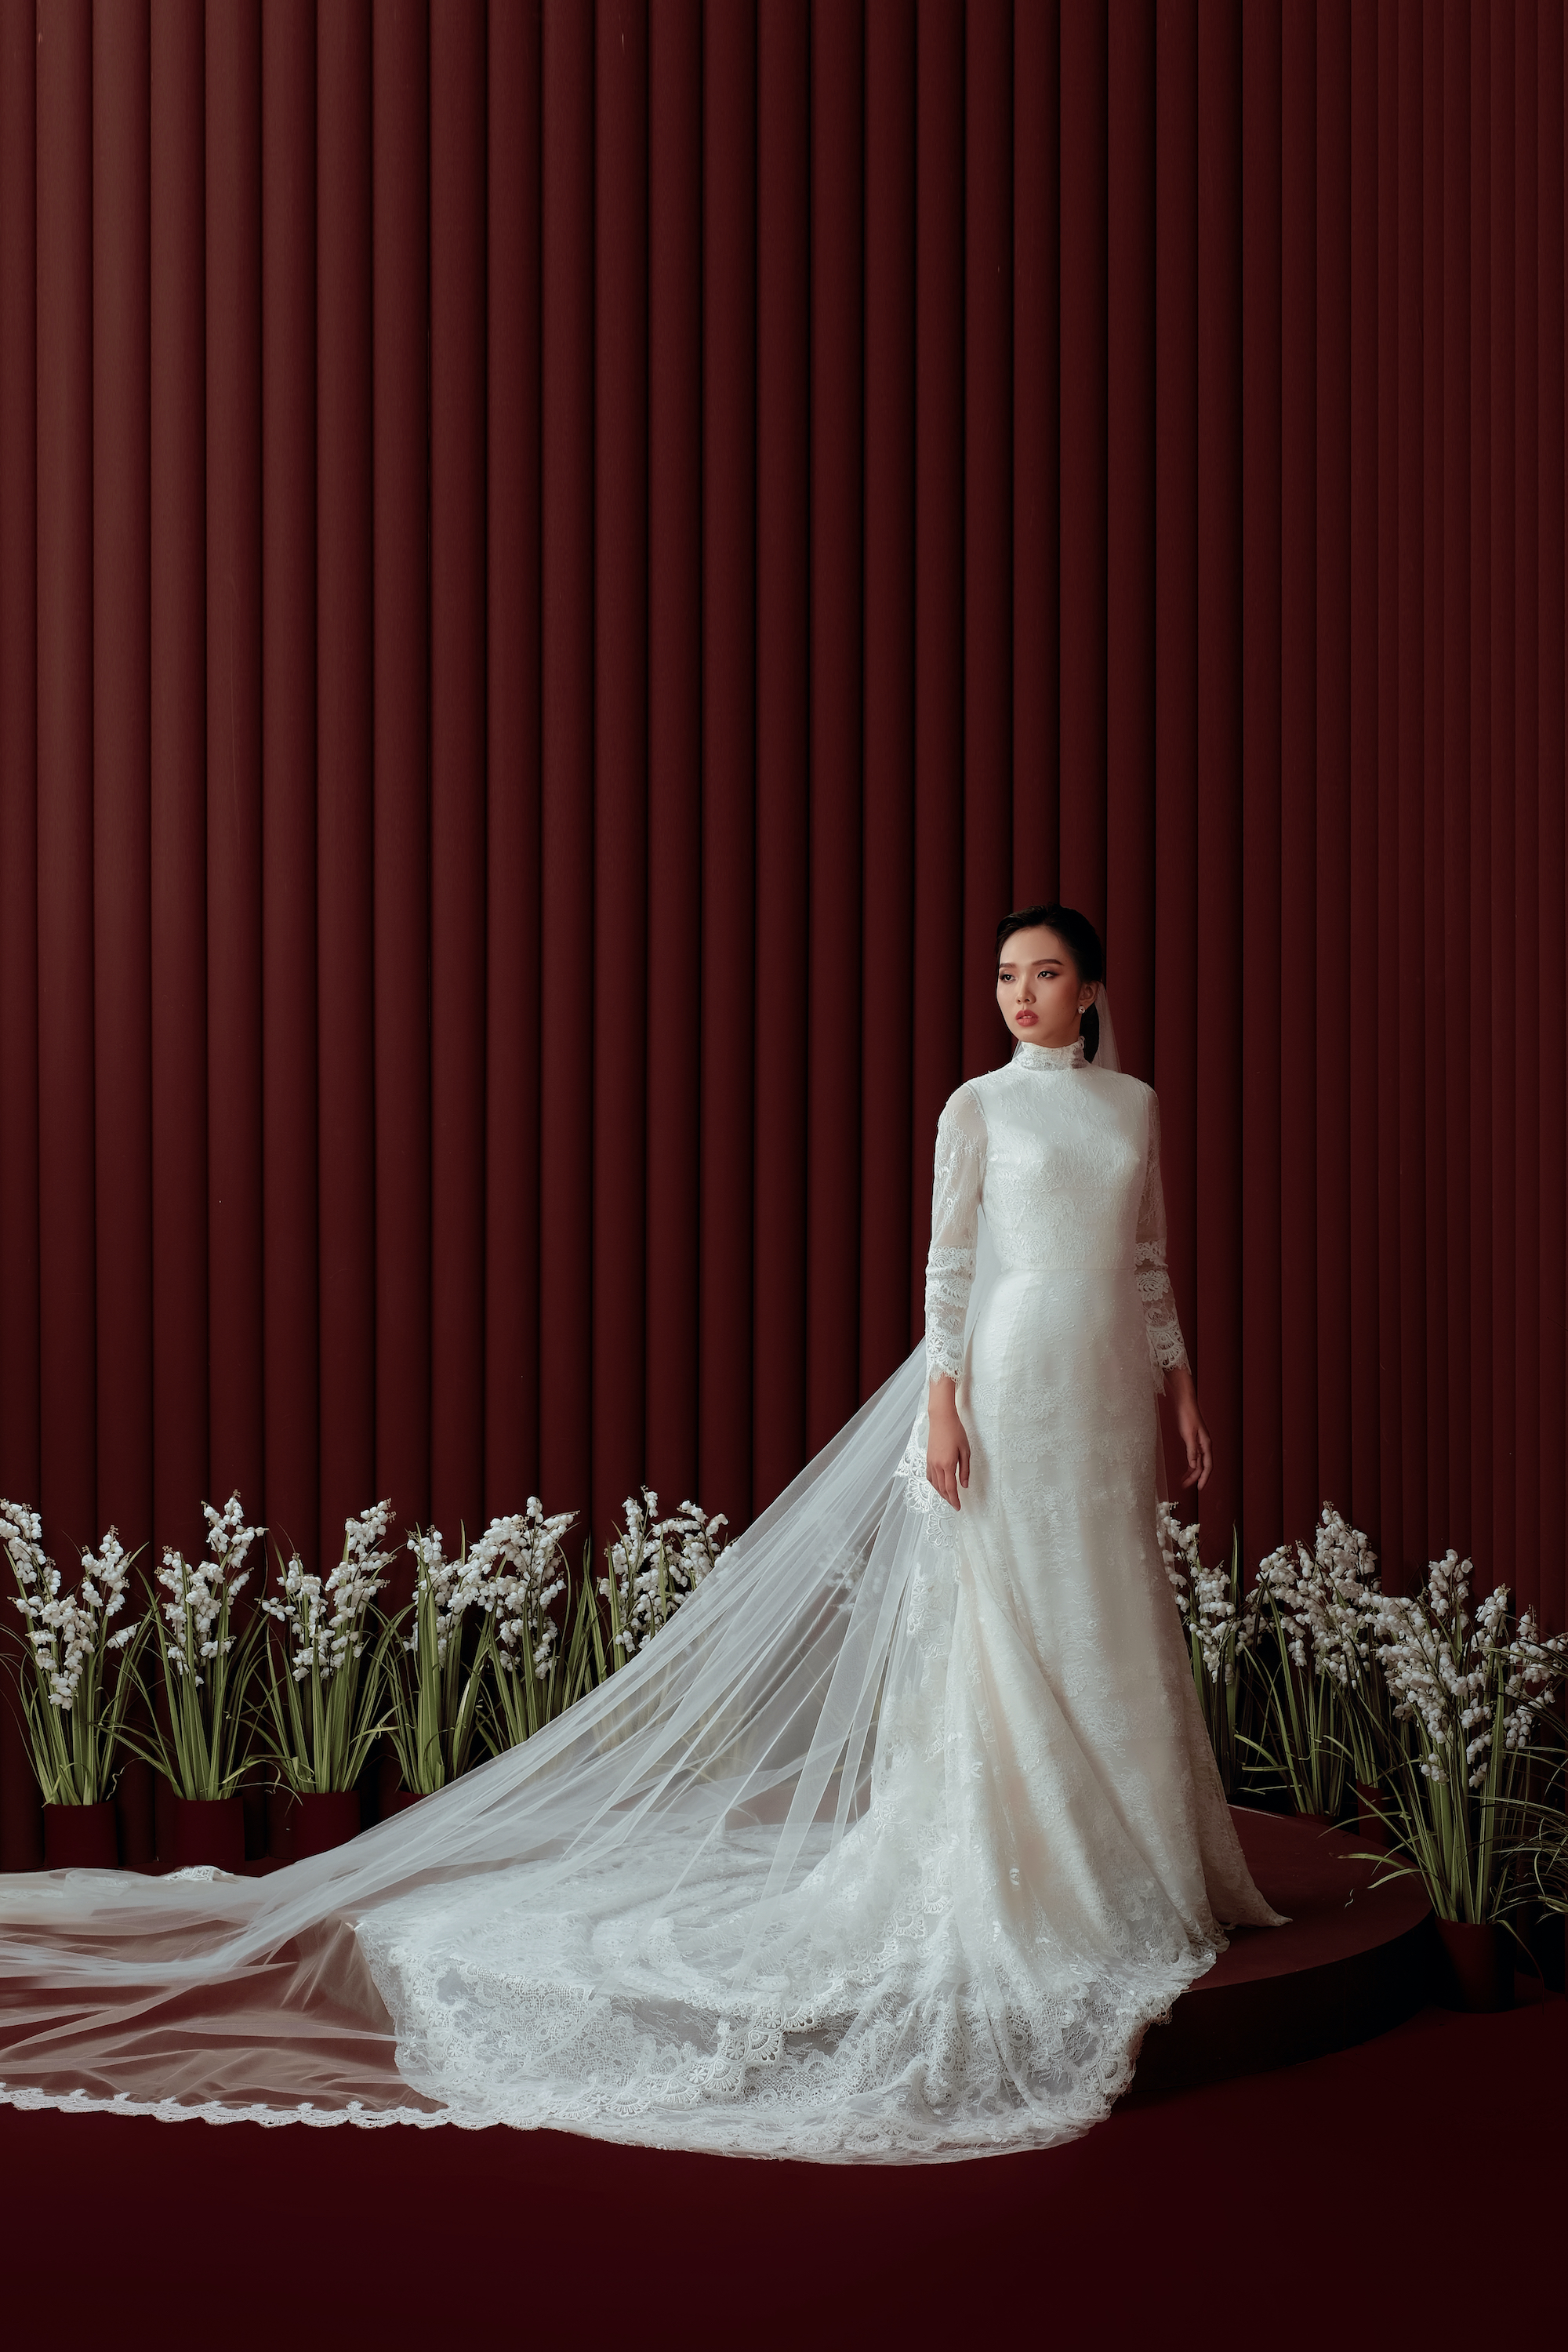 Bridal Collection - latest wedding gown trends through our collections